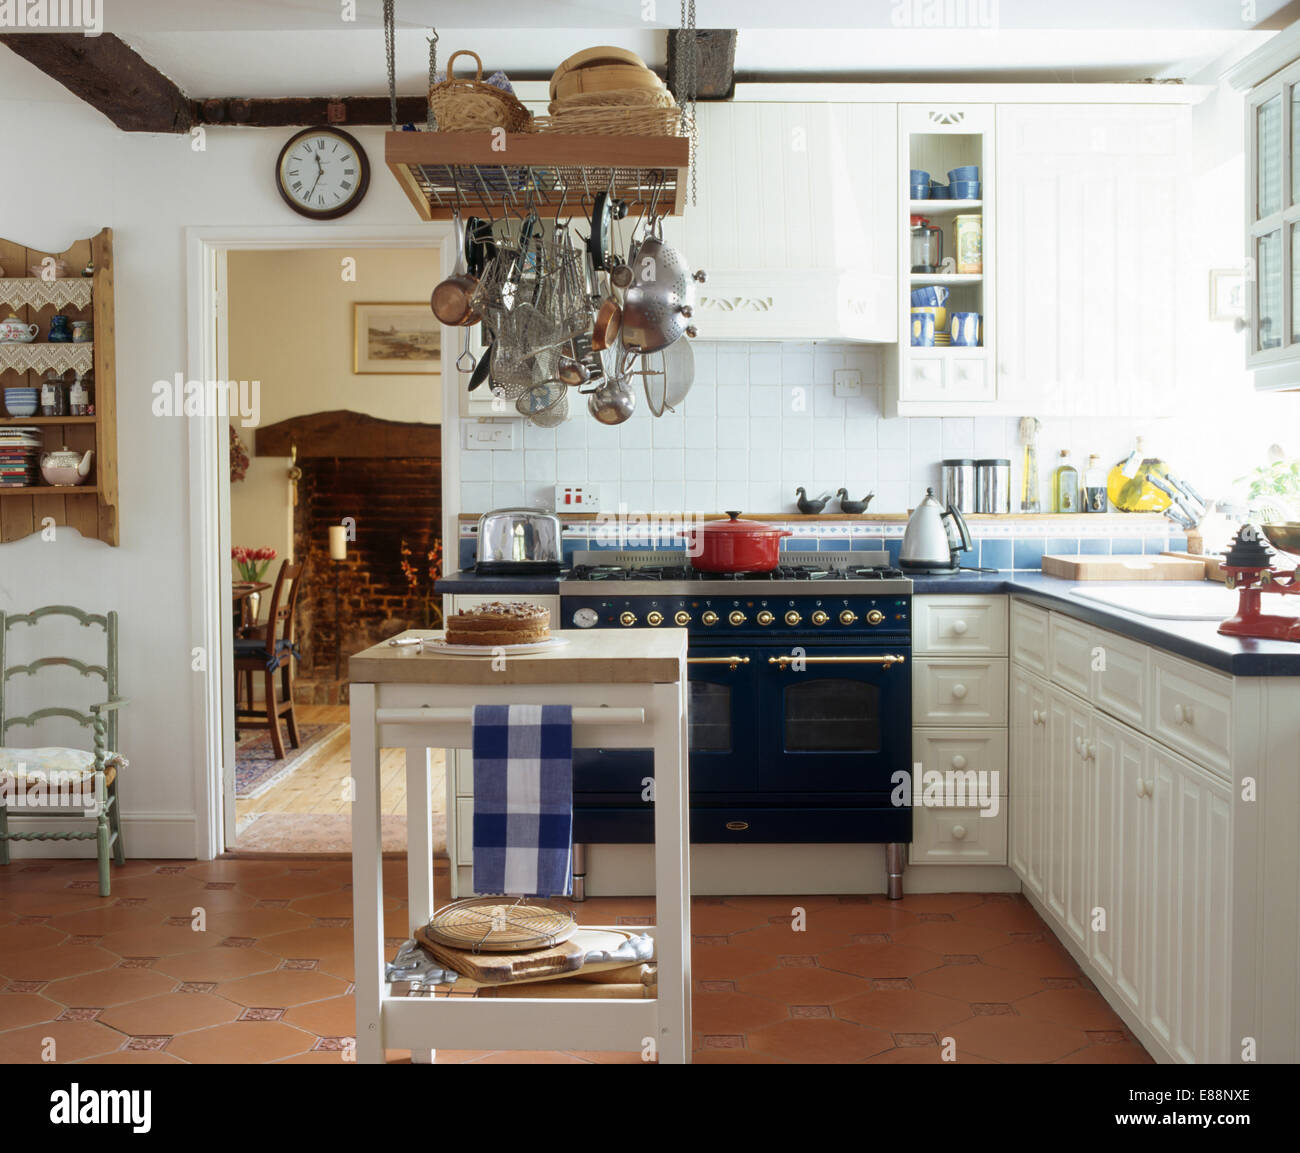 metal utensils on ceiling rack above butcheru0027s block in white country kitchen with terracotta tiled floor butcher a37 country